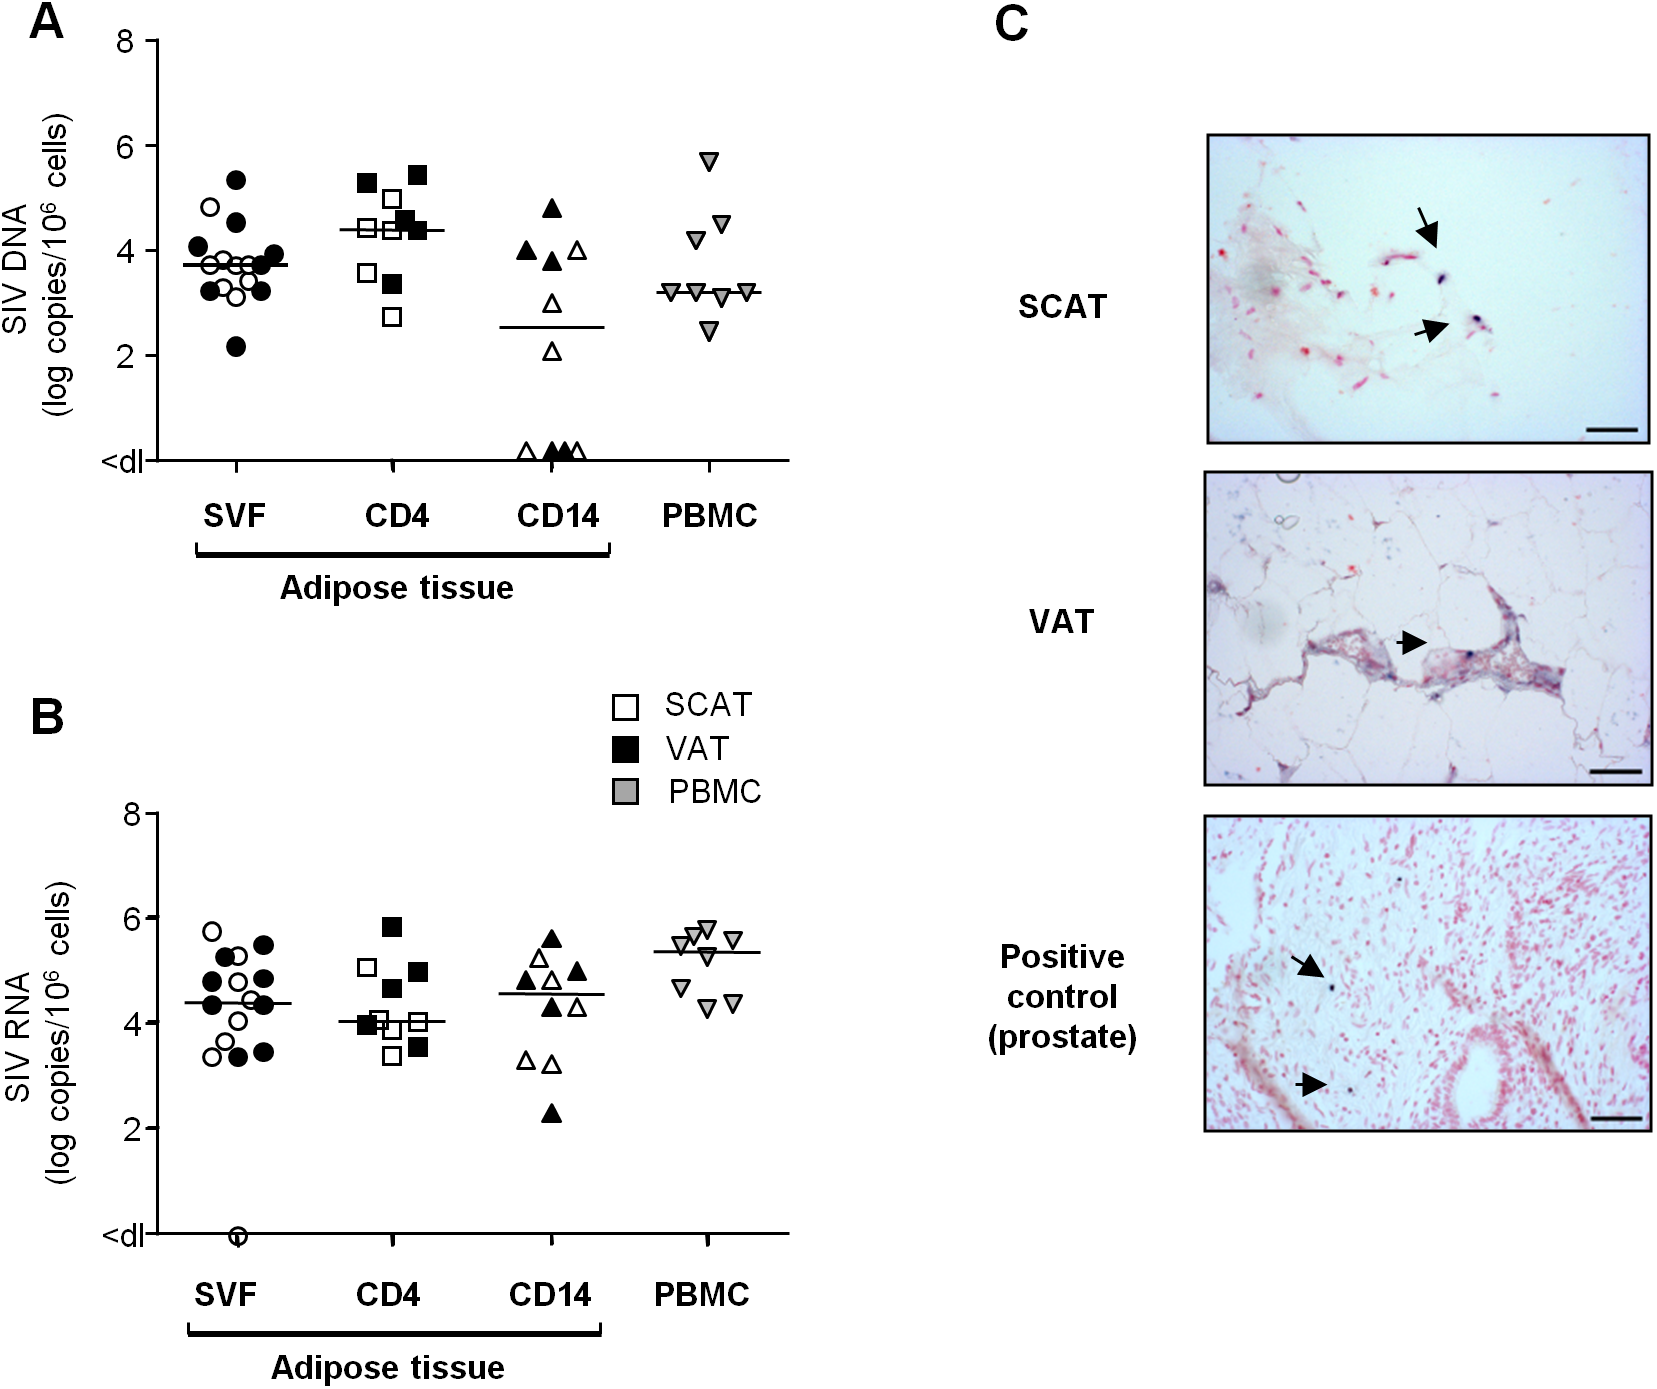 Quantification of SIV DNA and RNA in adipose tissue cells.